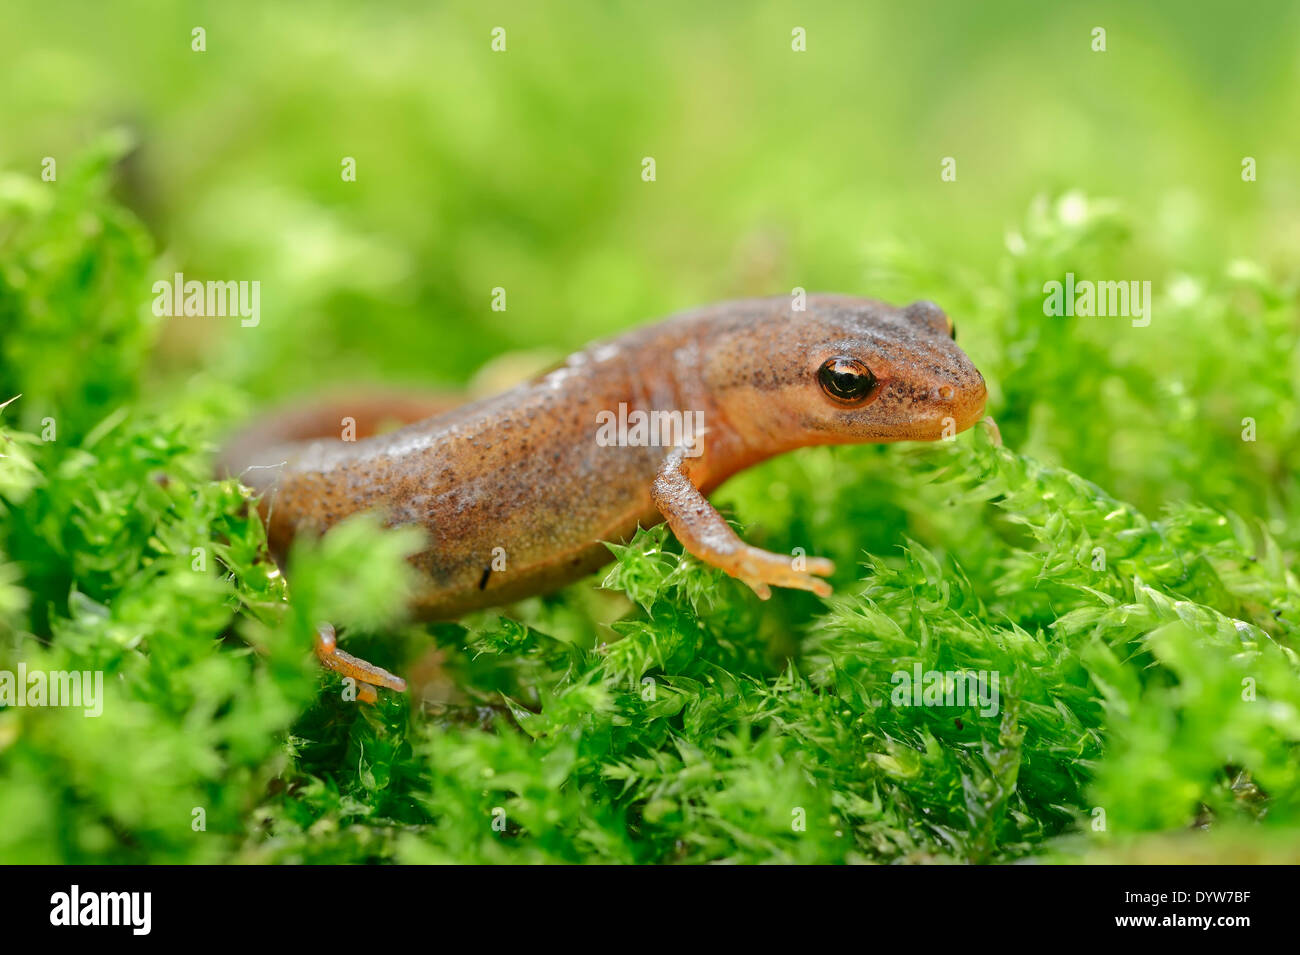 Smooth Newt or Common Newt (Lissotriton vulgaris, Triturus vulgaris), female, North Rhine-Westphalia, Germany - Stock Image